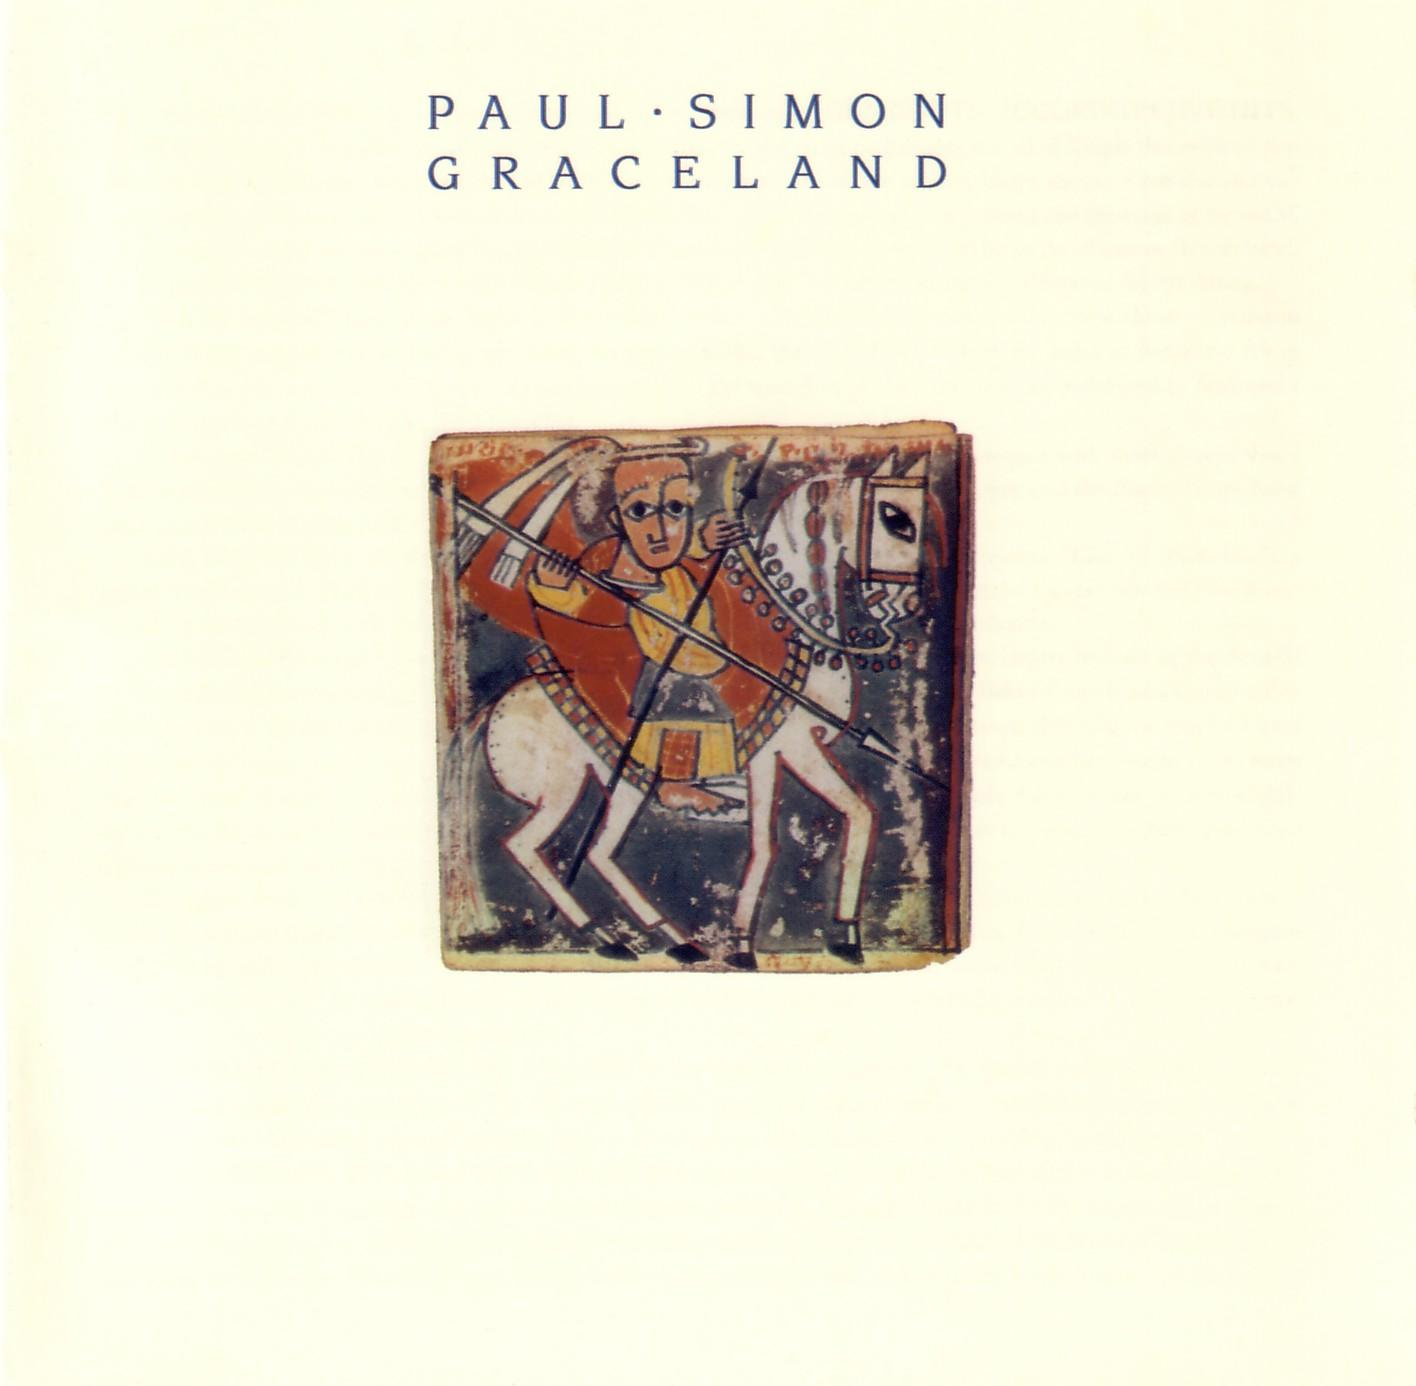 Graceland cover - Paul Simon